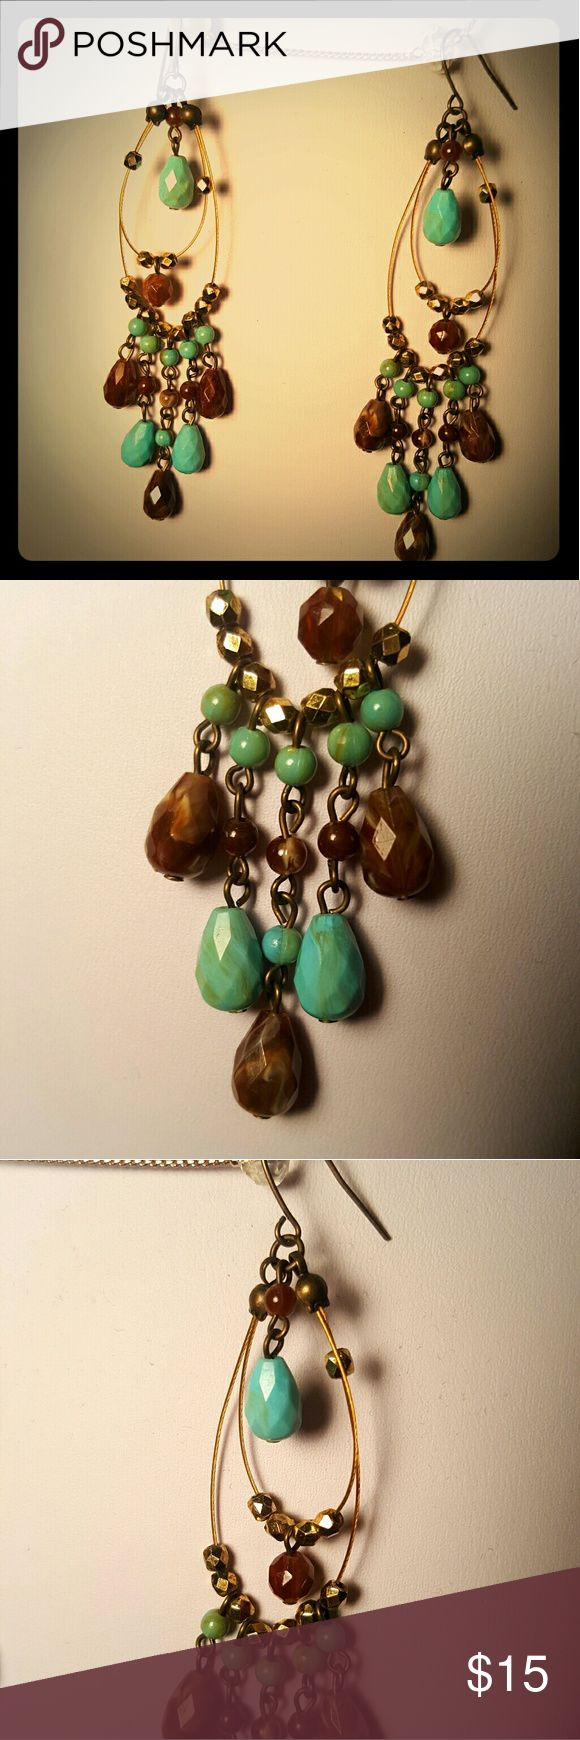 Turquoise and Brown Chandelier Earrings I made these fun earrings. Natural colors Jewelry Earrings